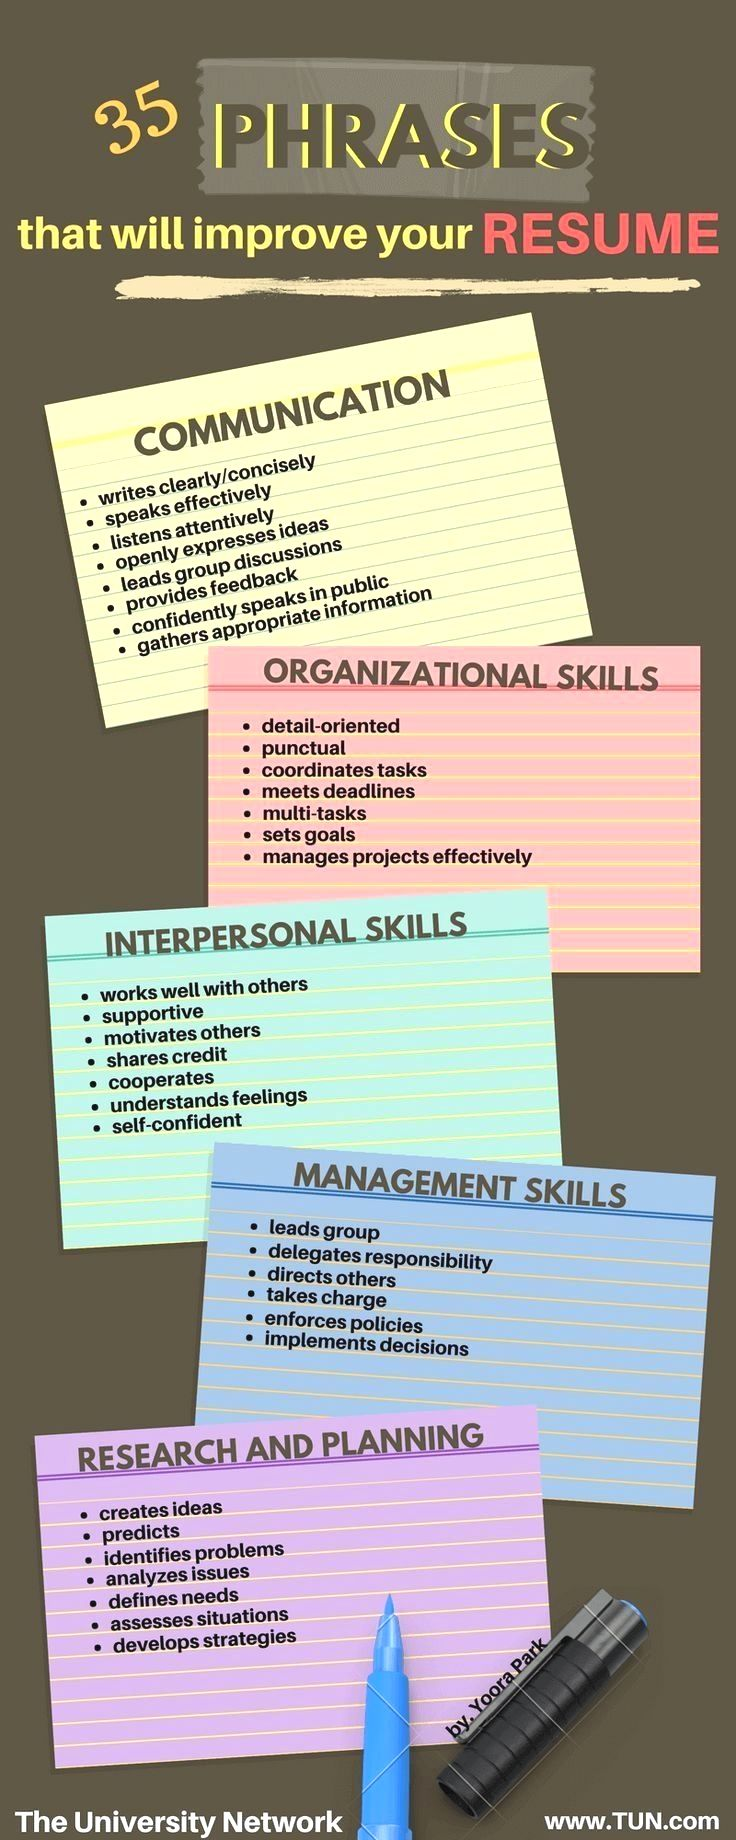 Pin by Stephanie Trott on Resume in 2020 Interpersonal